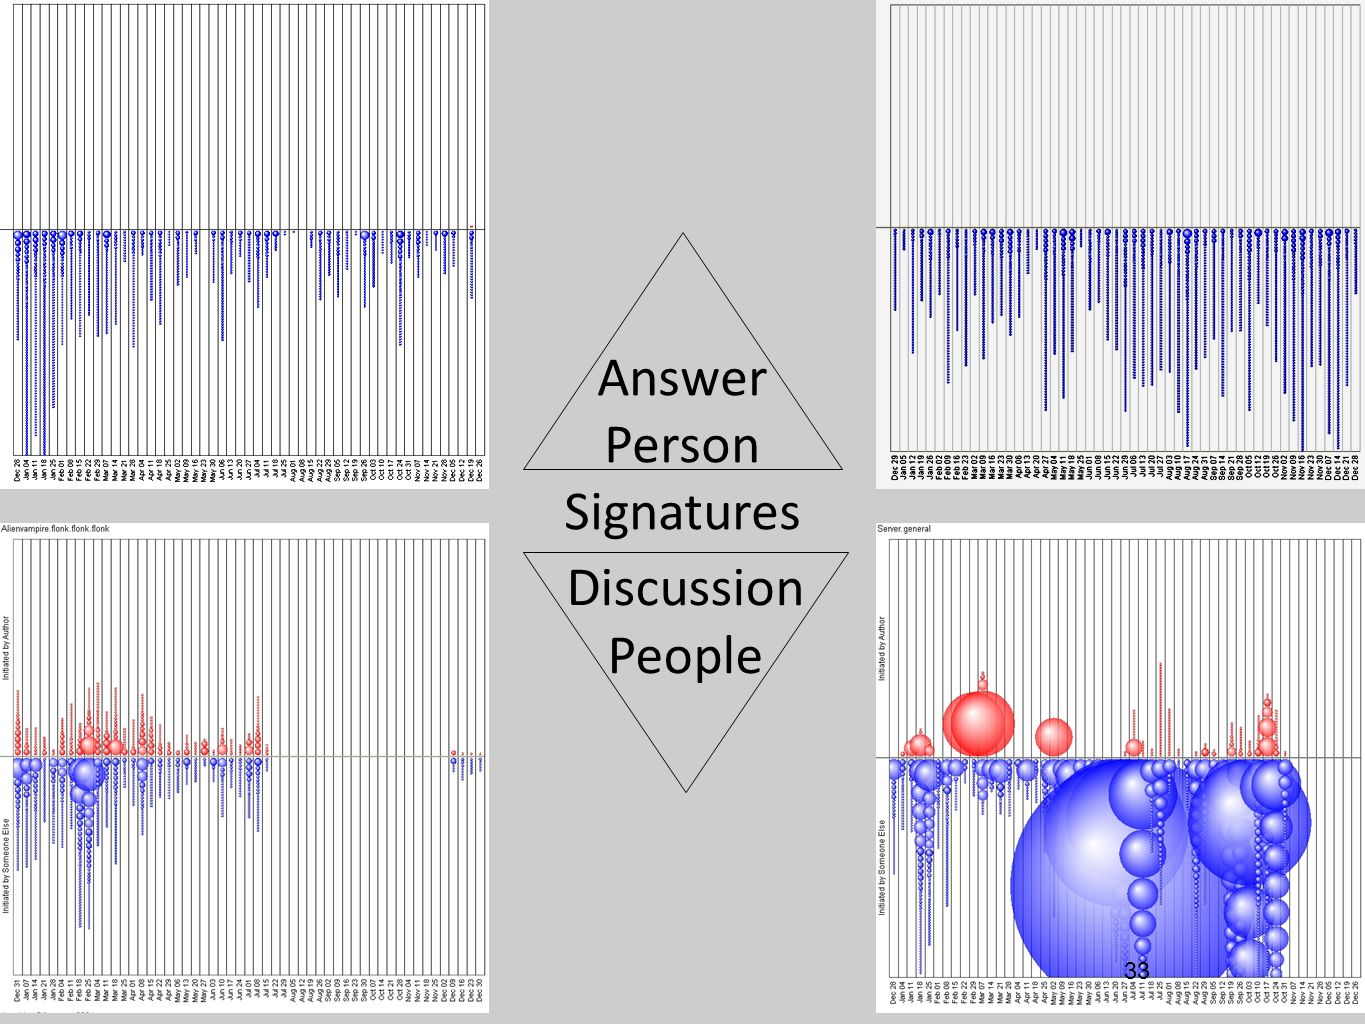 Answer Person Signatures